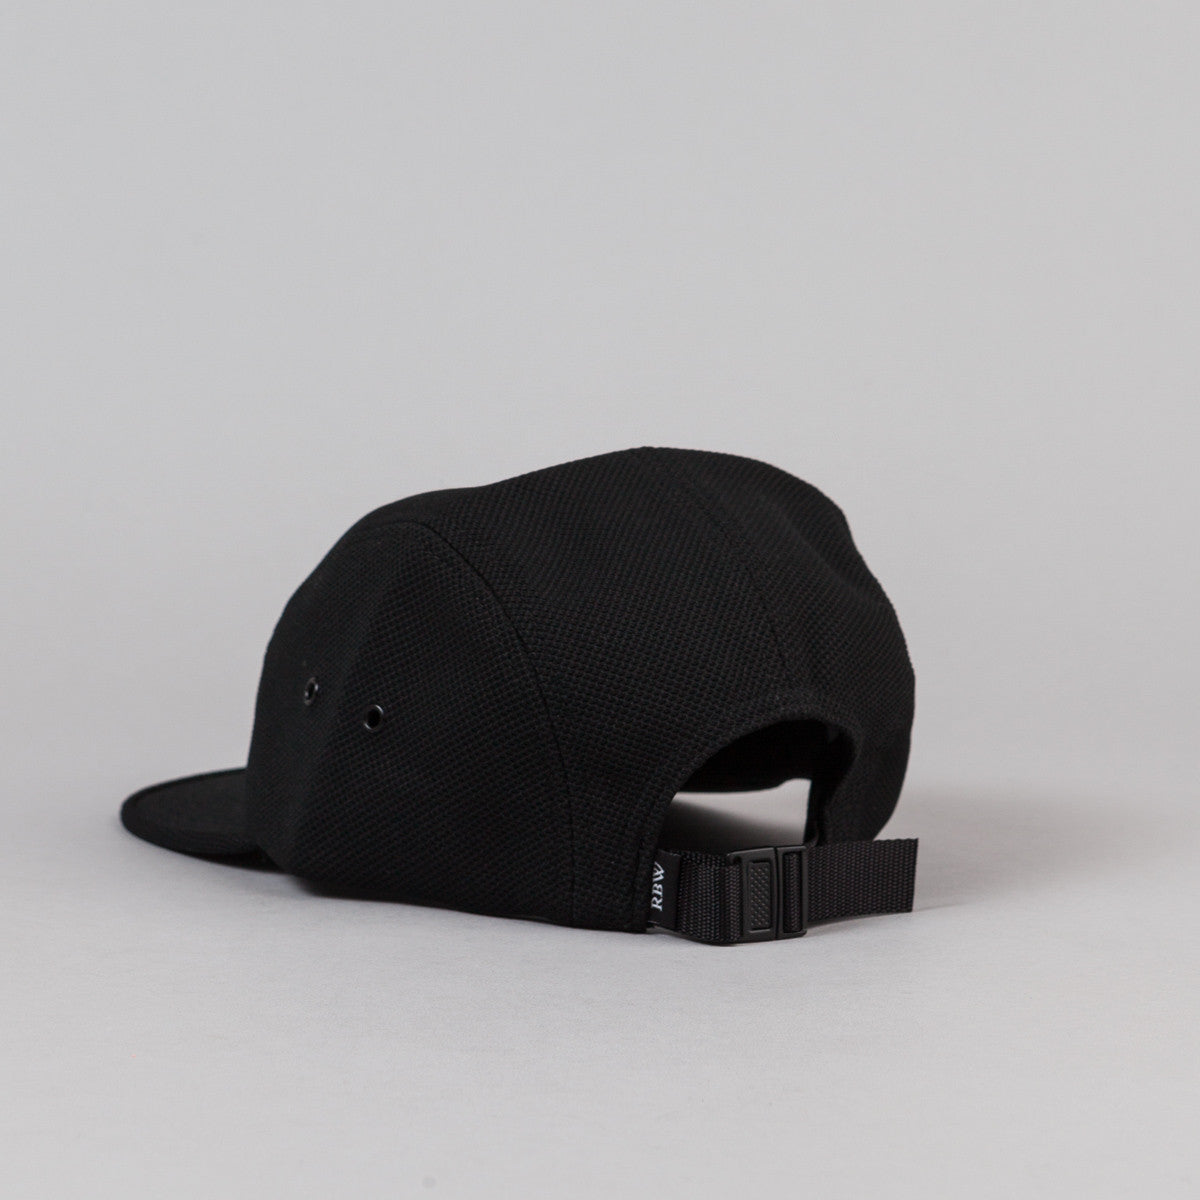 Raised By Wolves Algonquin Camp Cap - Black Diamond Knit